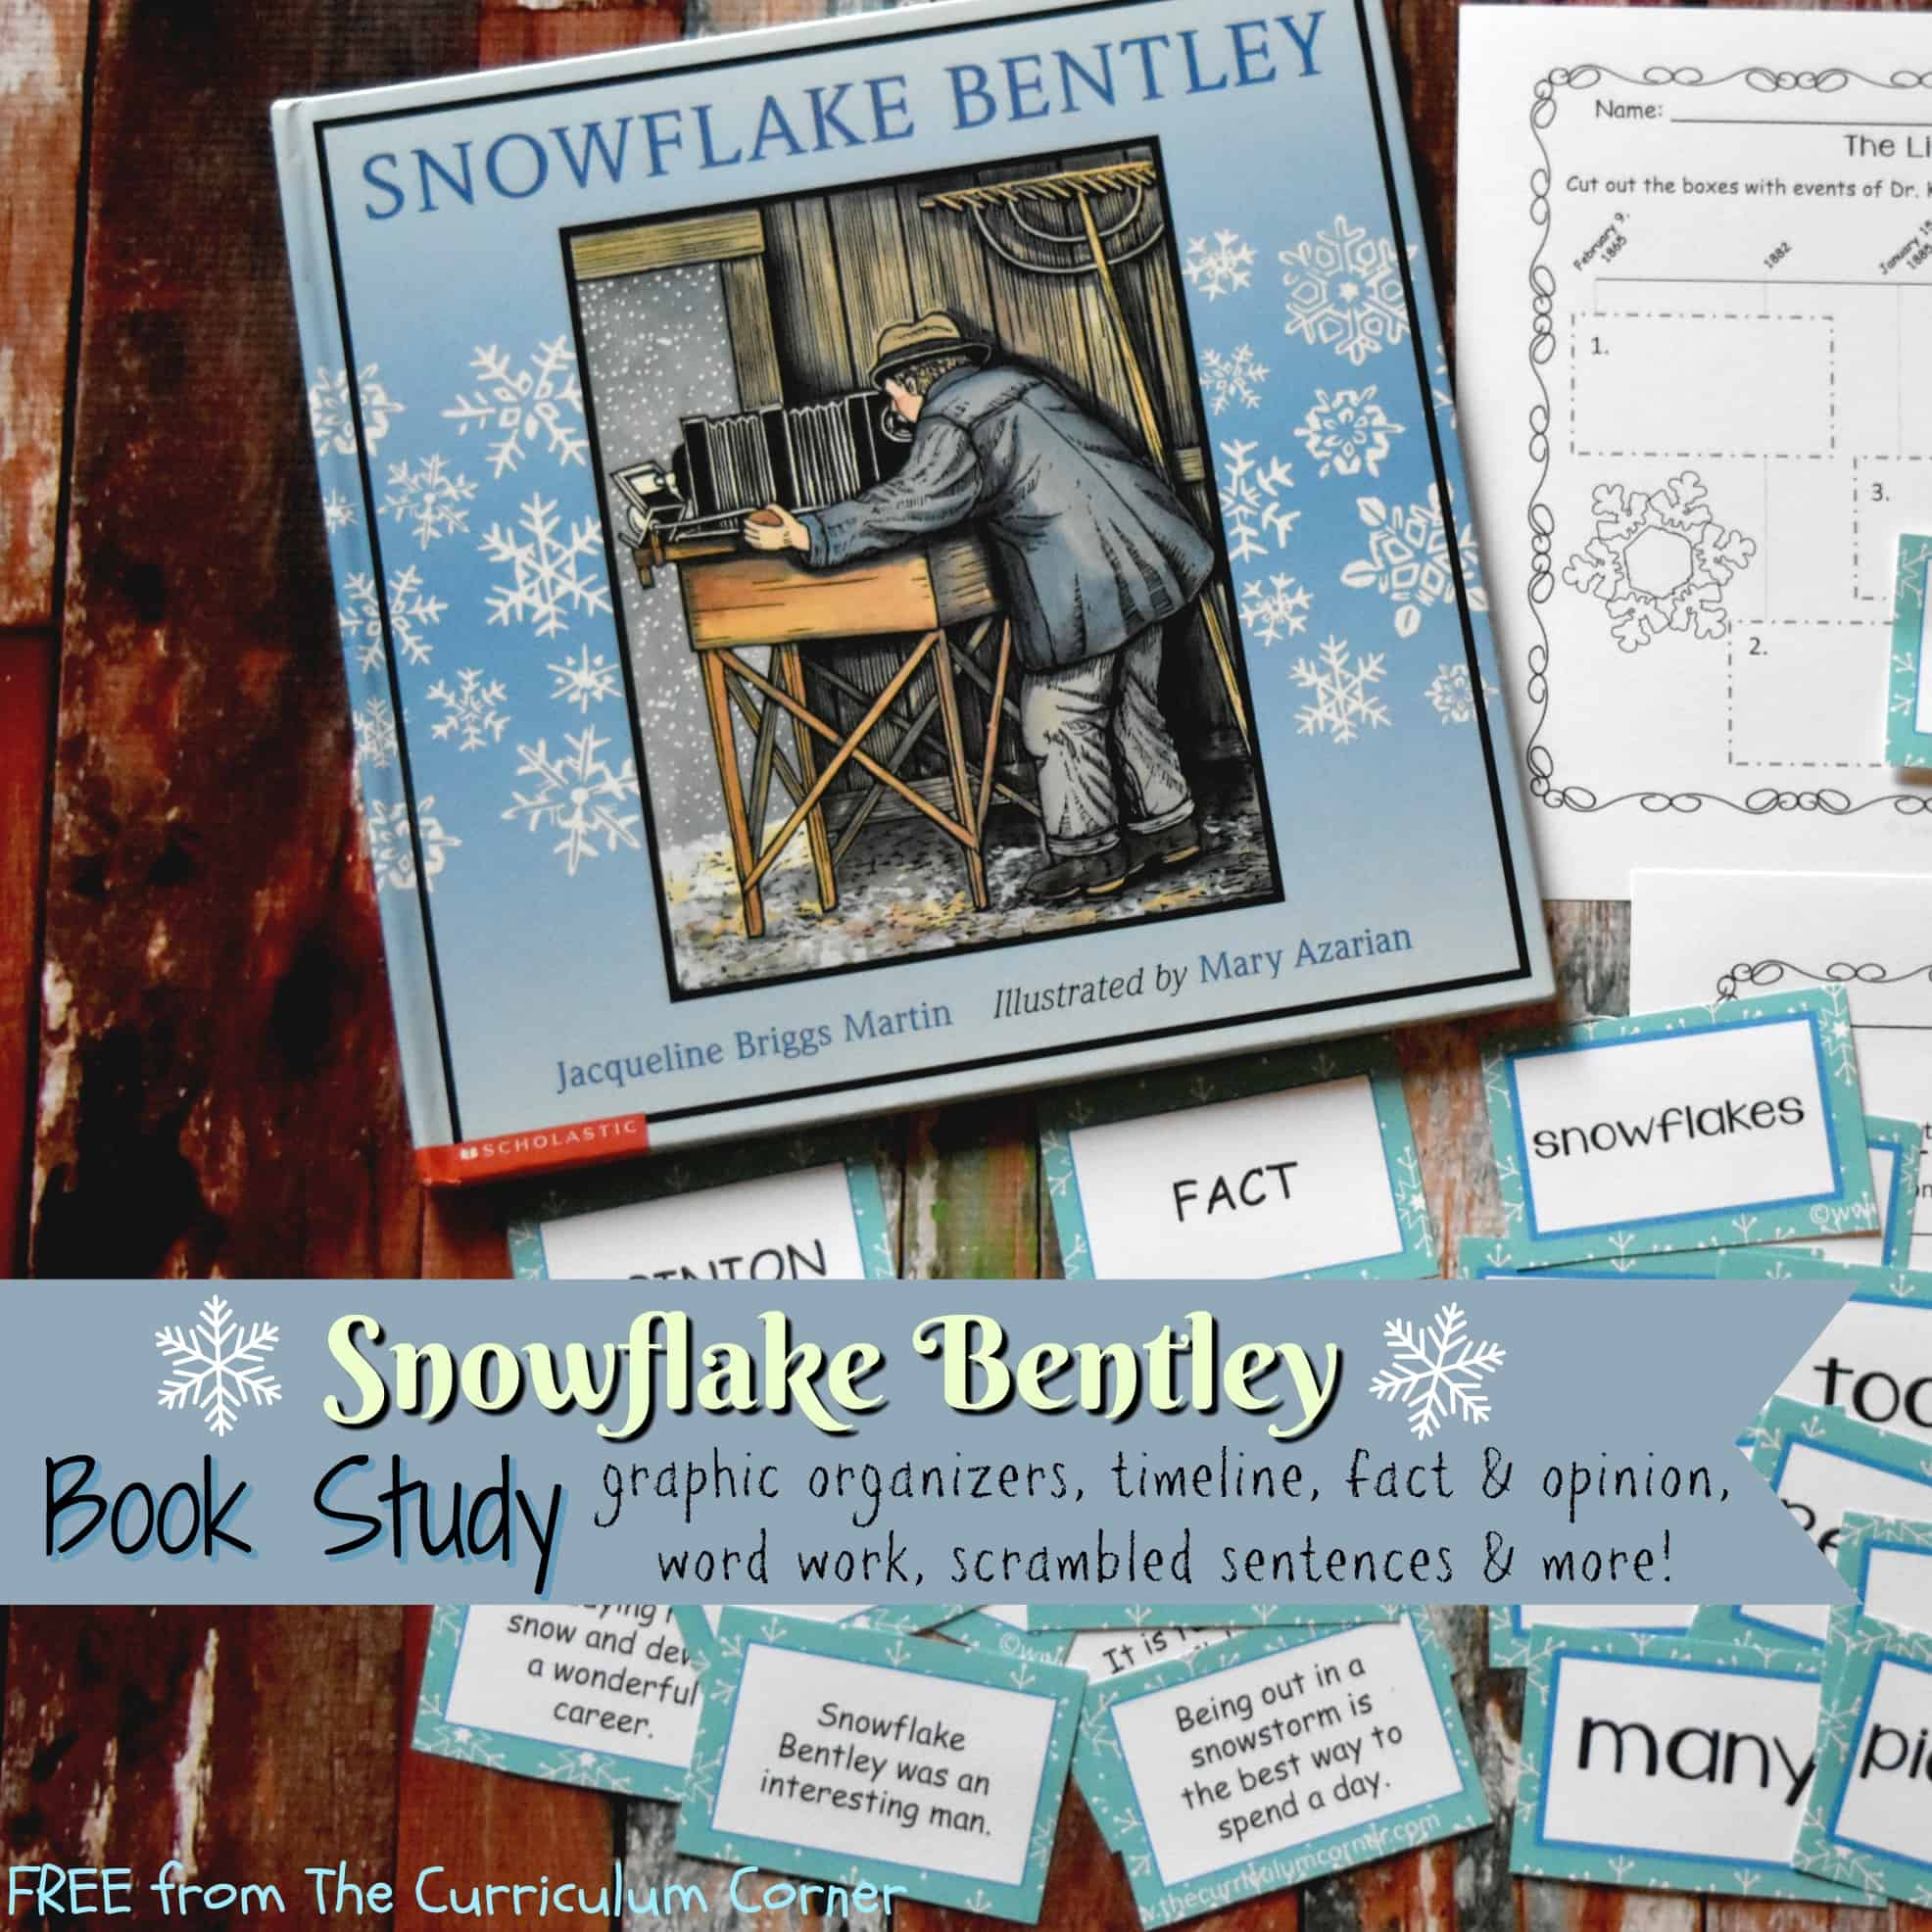 Book Study: Snowflake Bentley